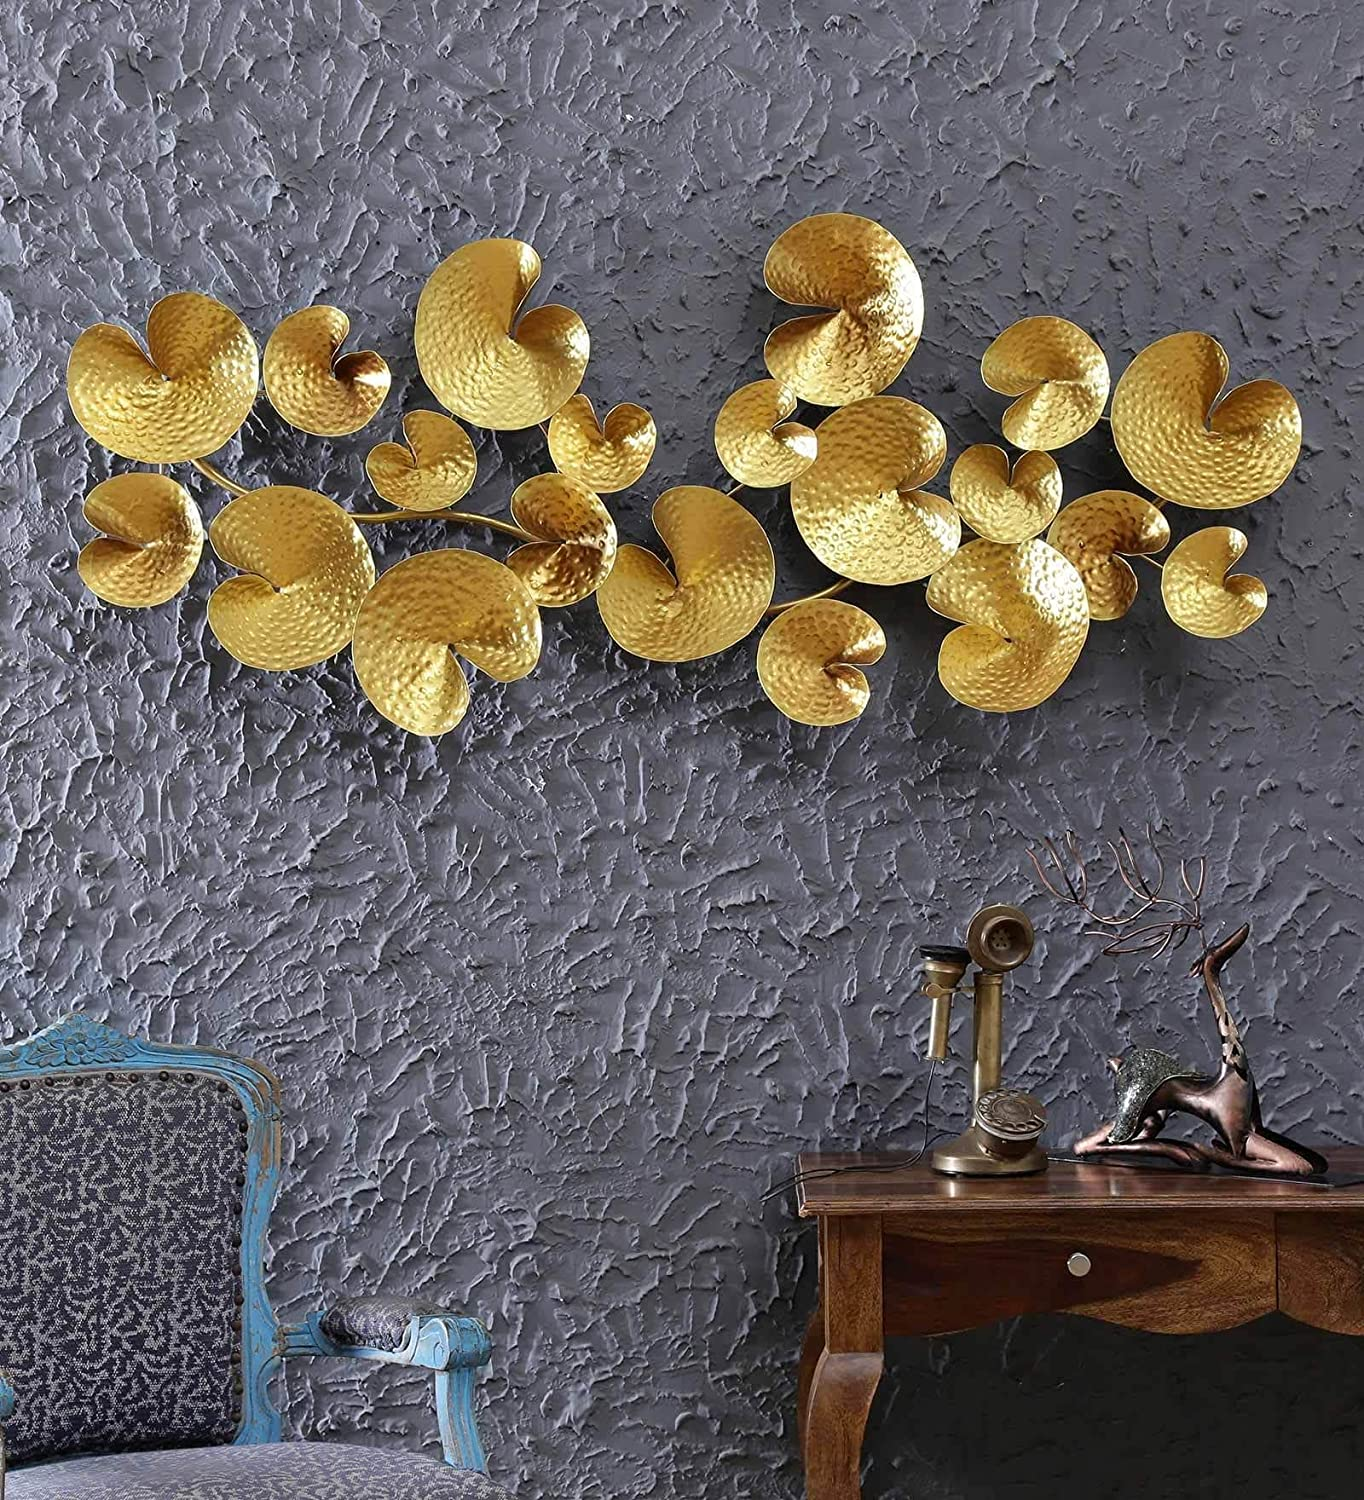 Collectible India Metal Design 3d Golden Abstract Flower Wall Art Sculpture Hanging Round Plates Mounted Modern Arts Home Office Decor Size 56 X 36